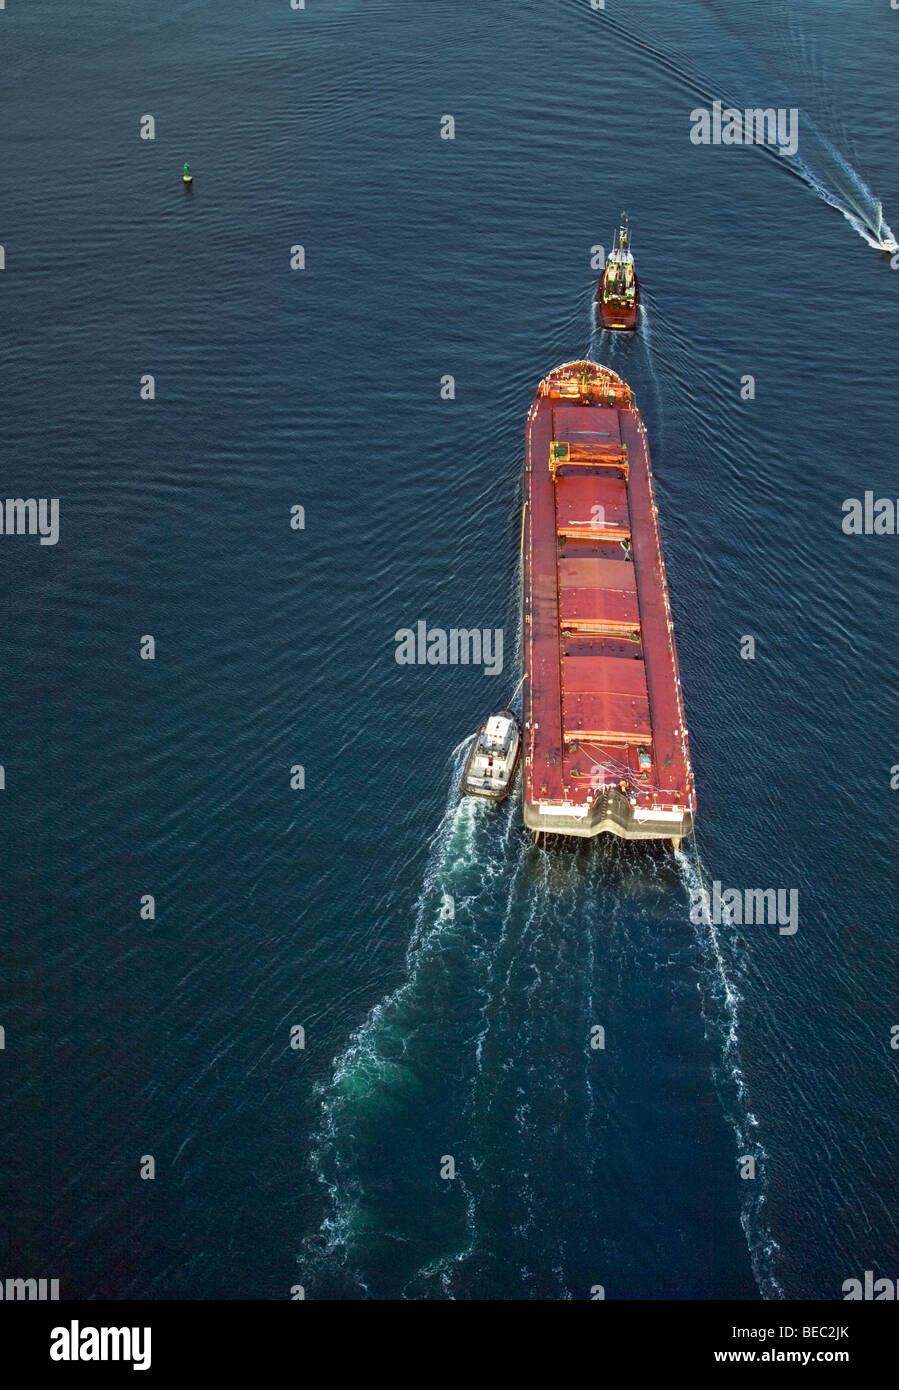 large red barge being guided by tug boats in ocean - Stock Image